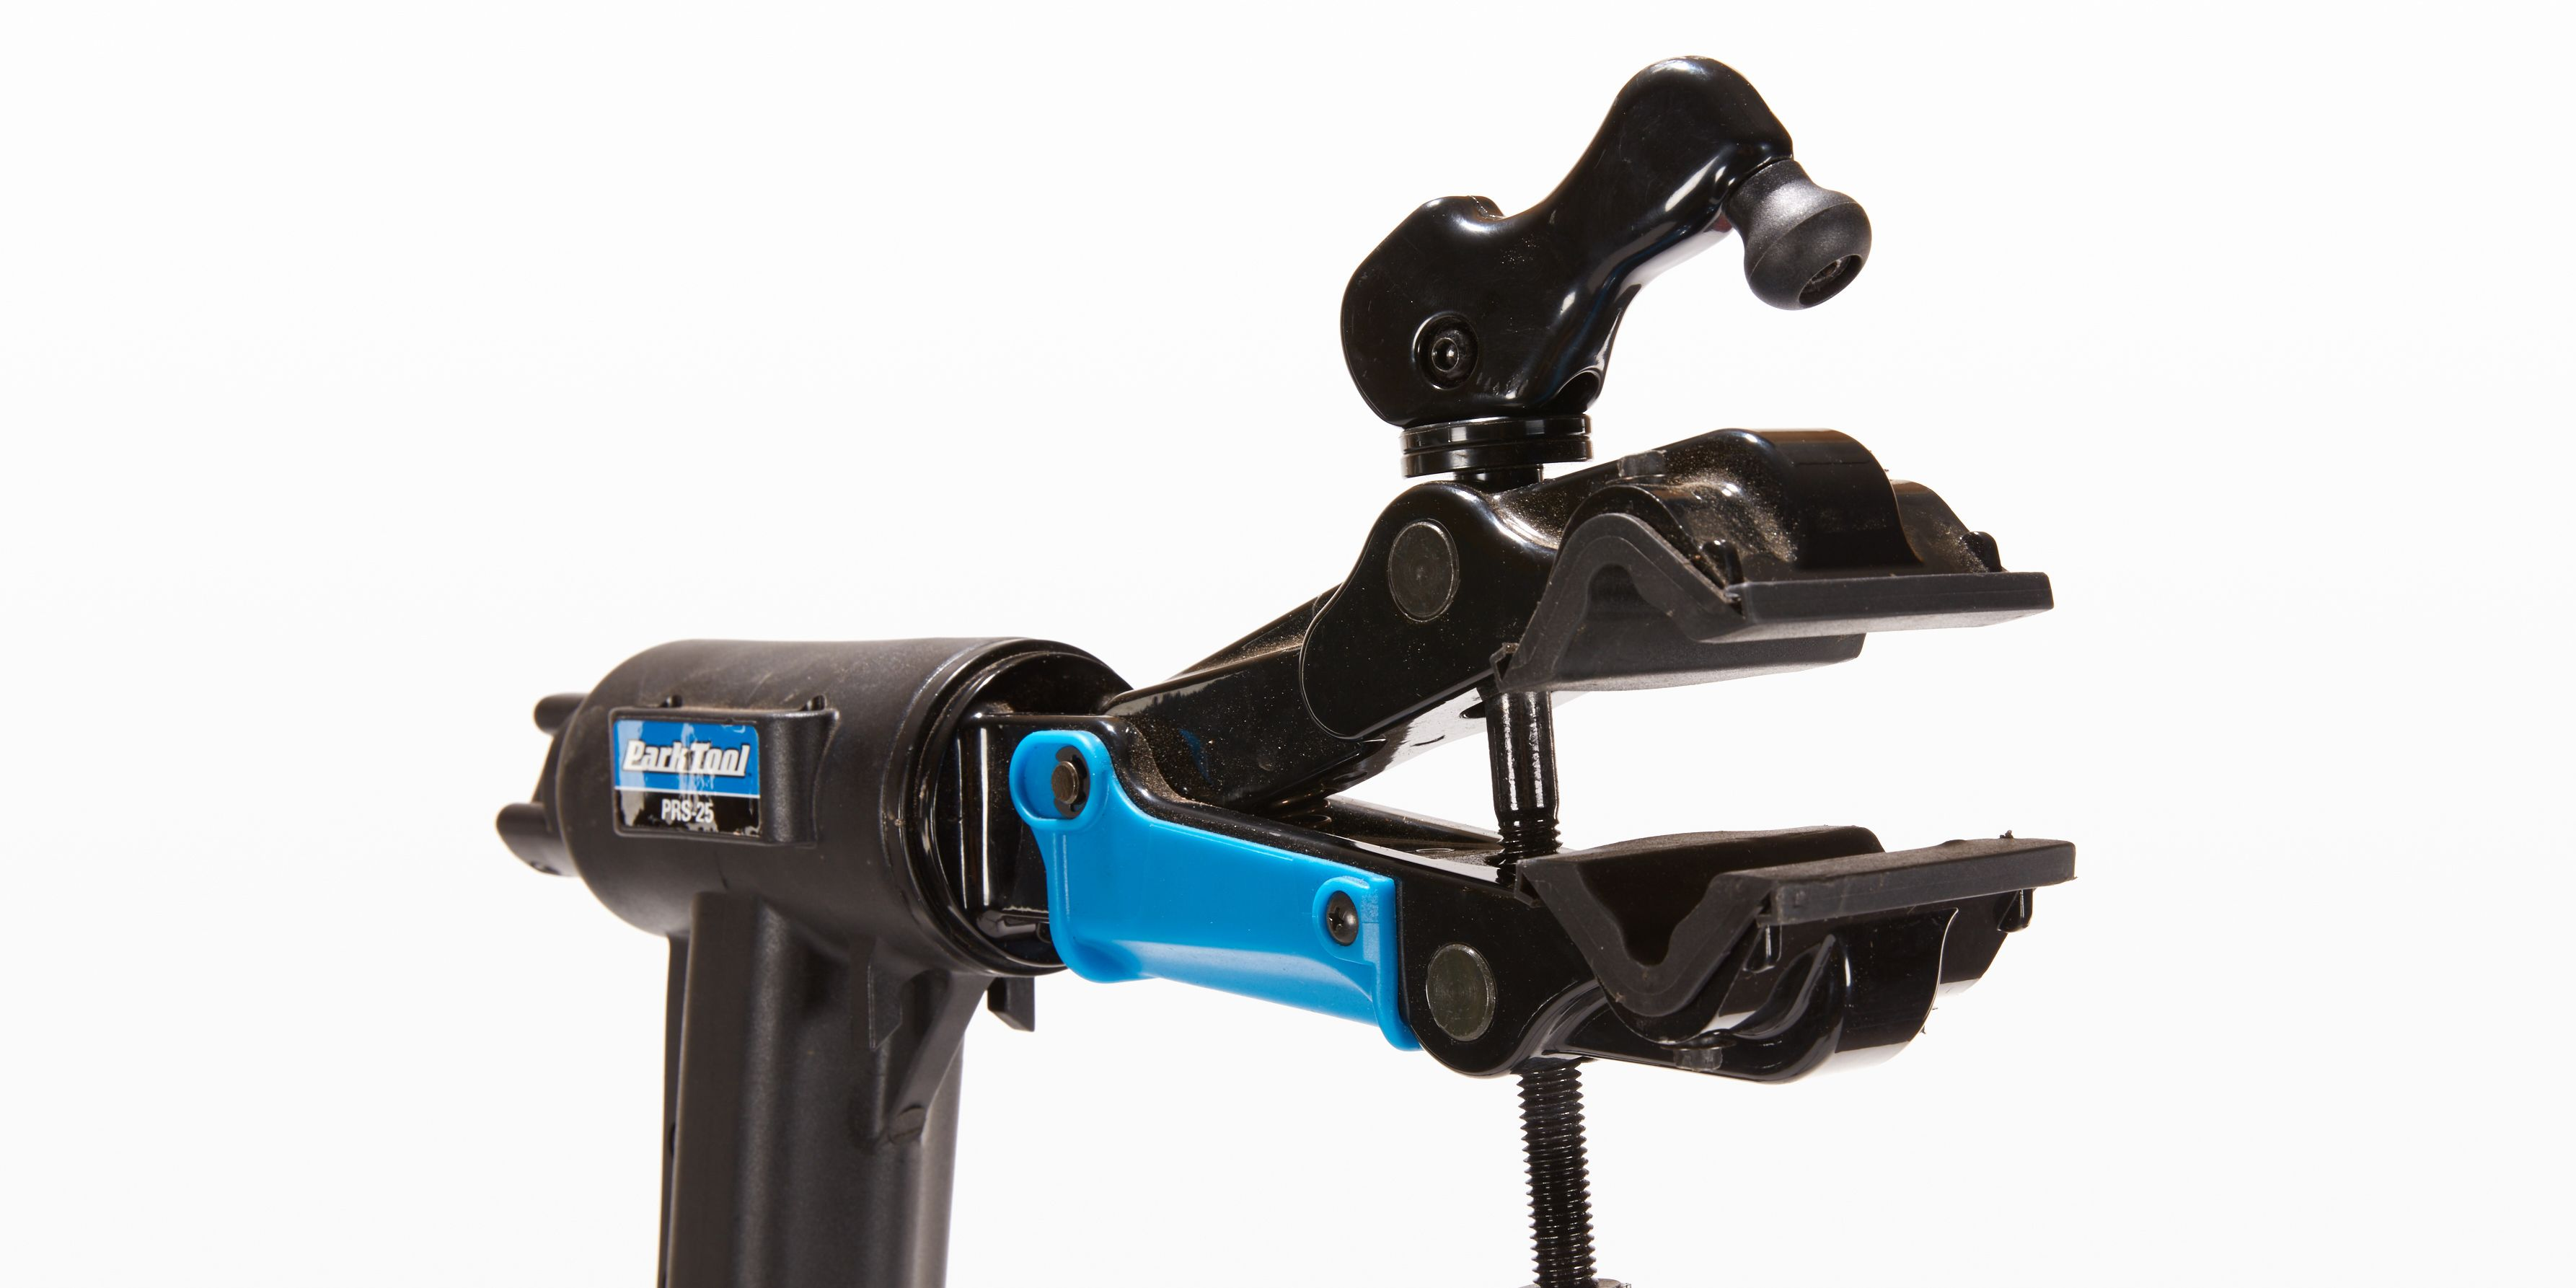 Park Tool PRS 25 Stand